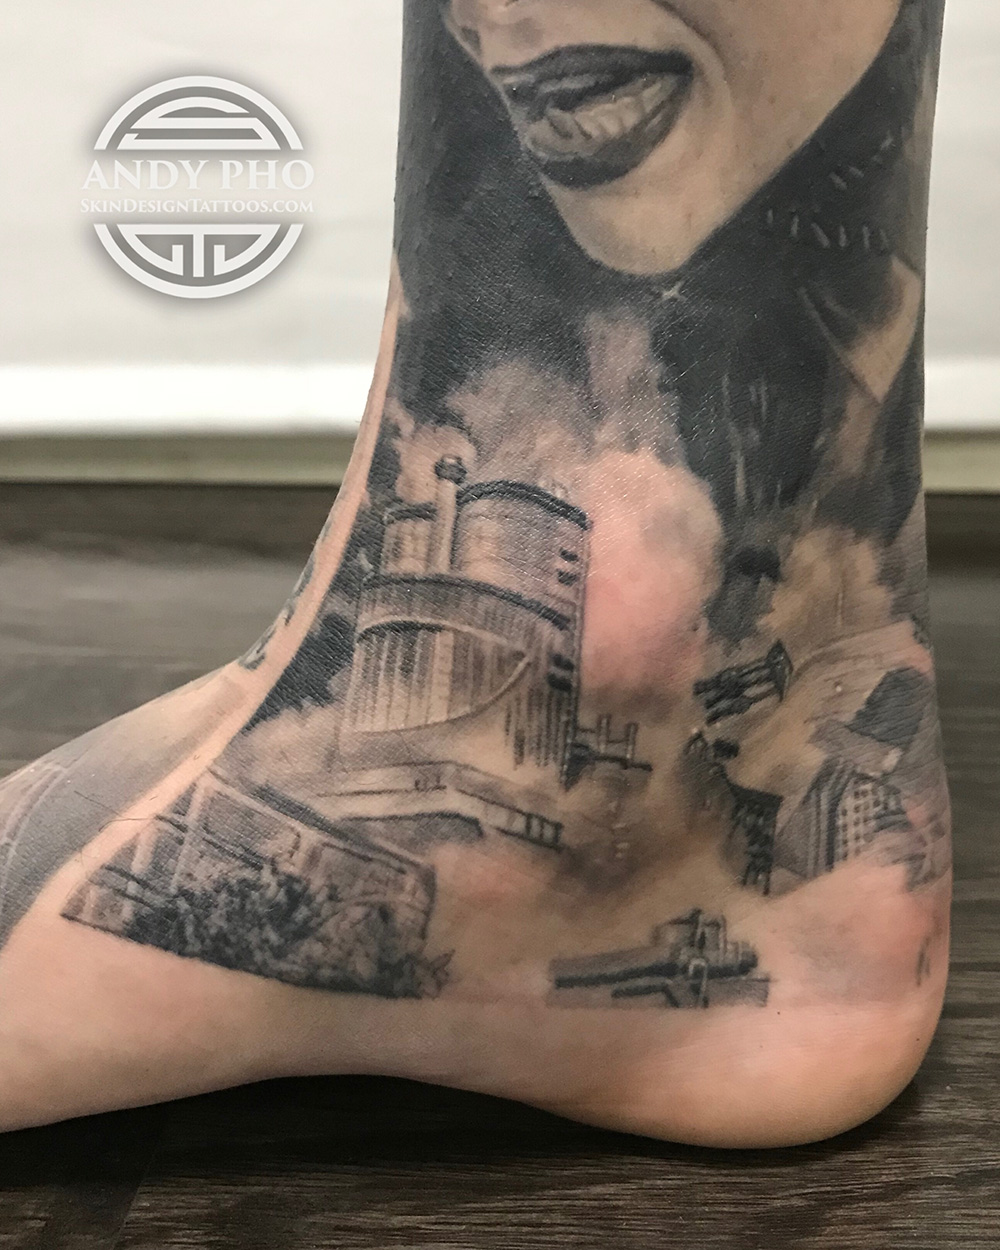 Andy Pho explosion tattoo.JPG